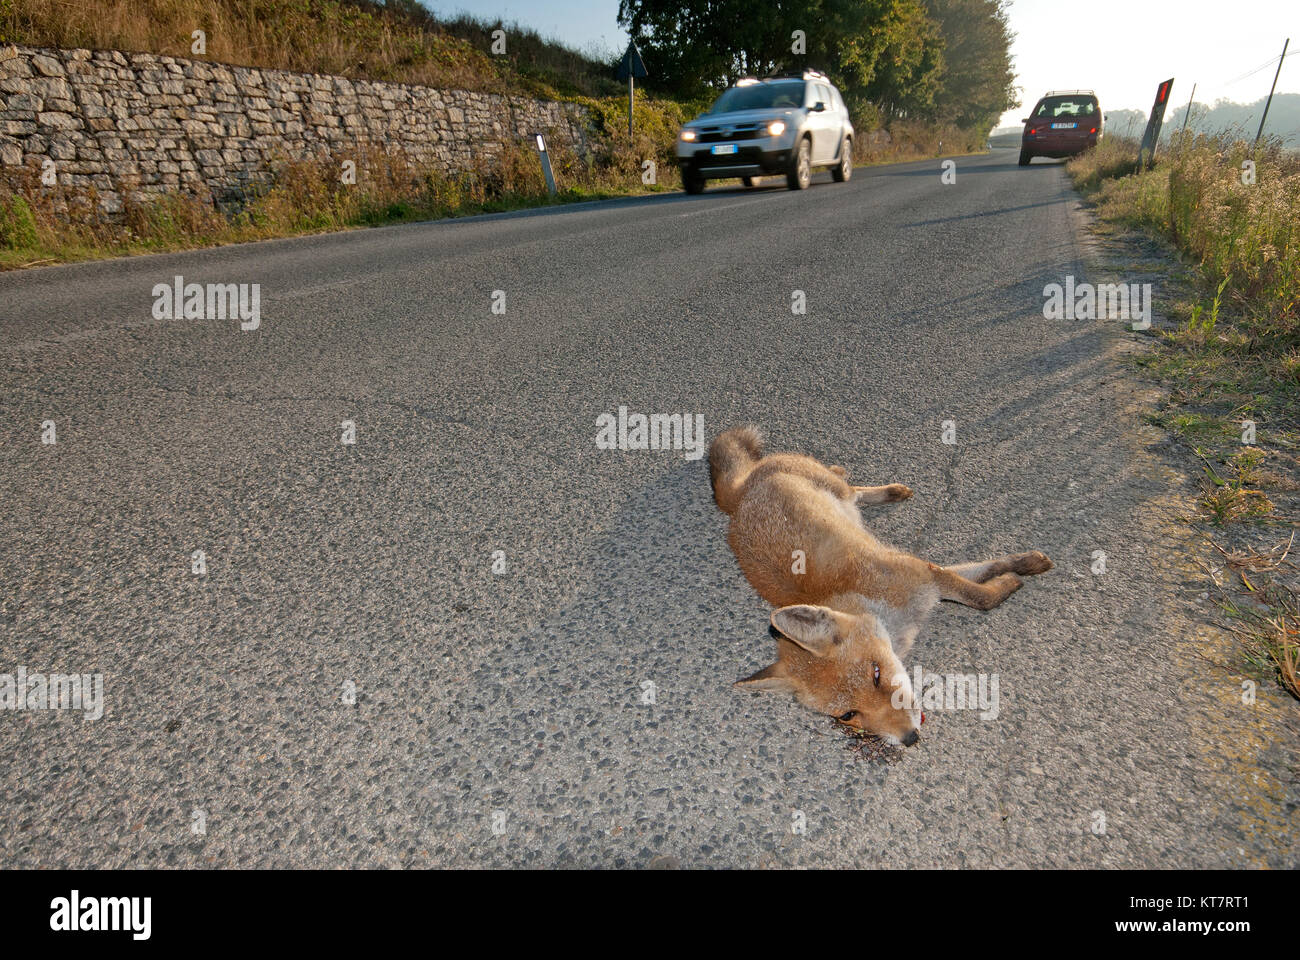 Red fox (Vulpes vulpes) killed on the road, Umbria, Italy - Stock Image